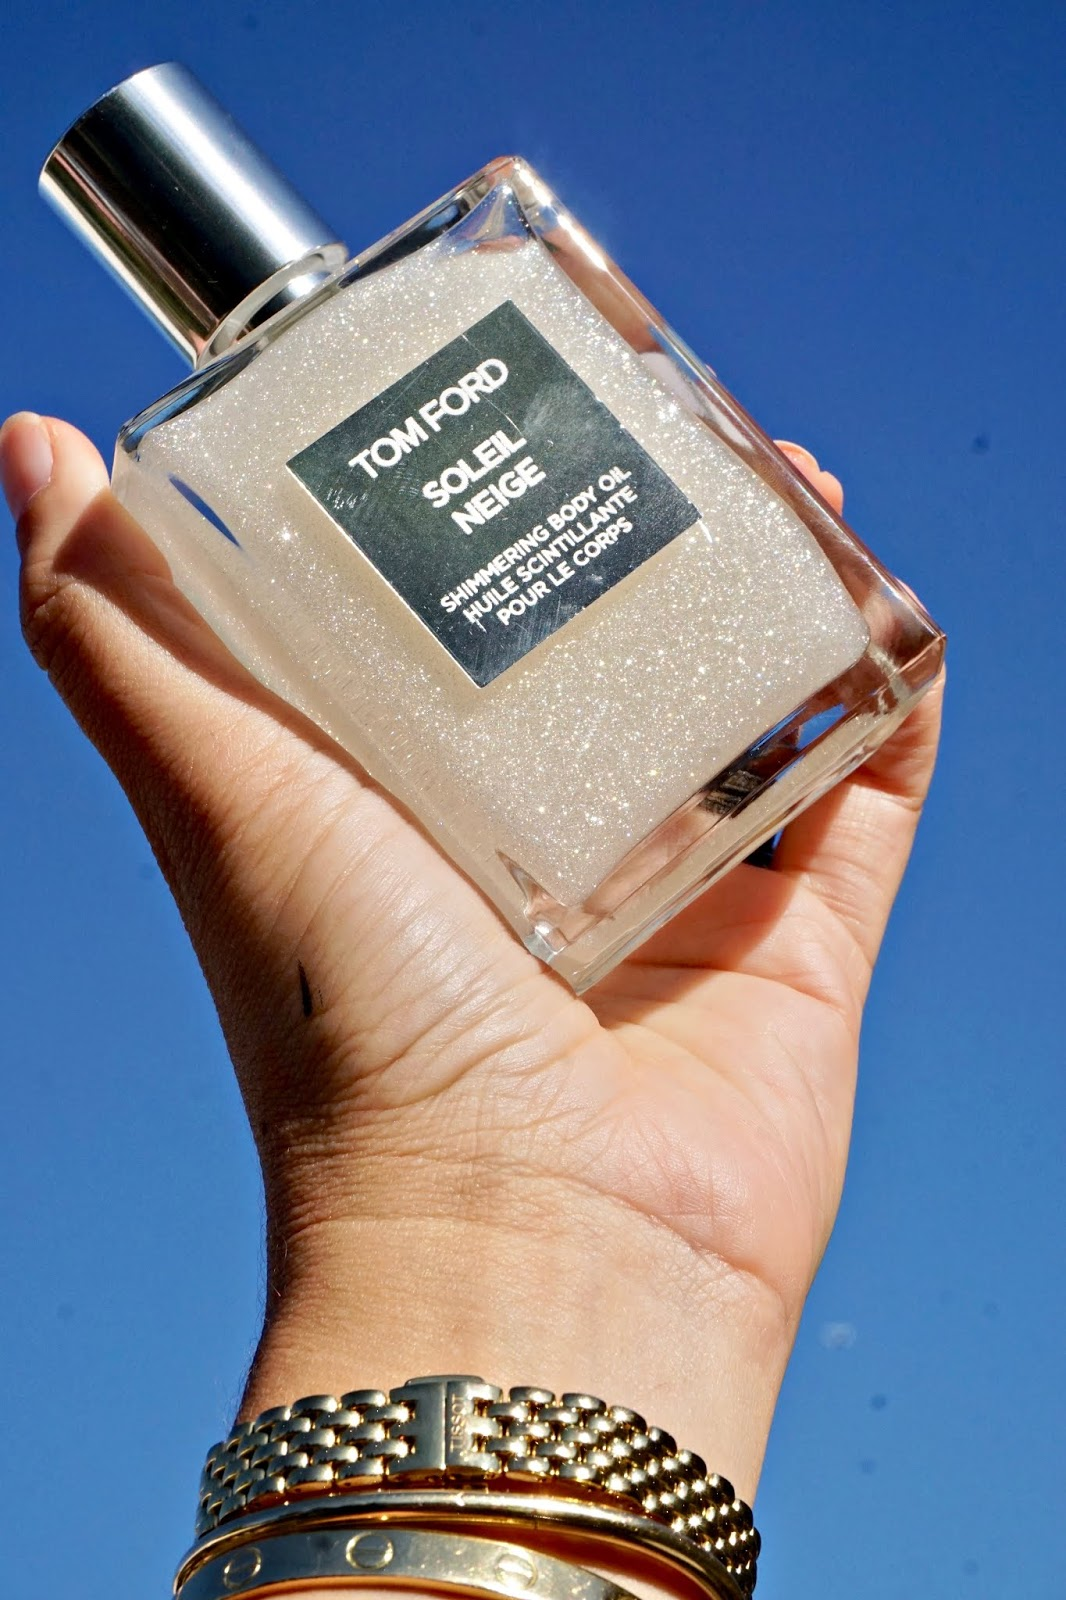 Tom Ford soleil neige body oil